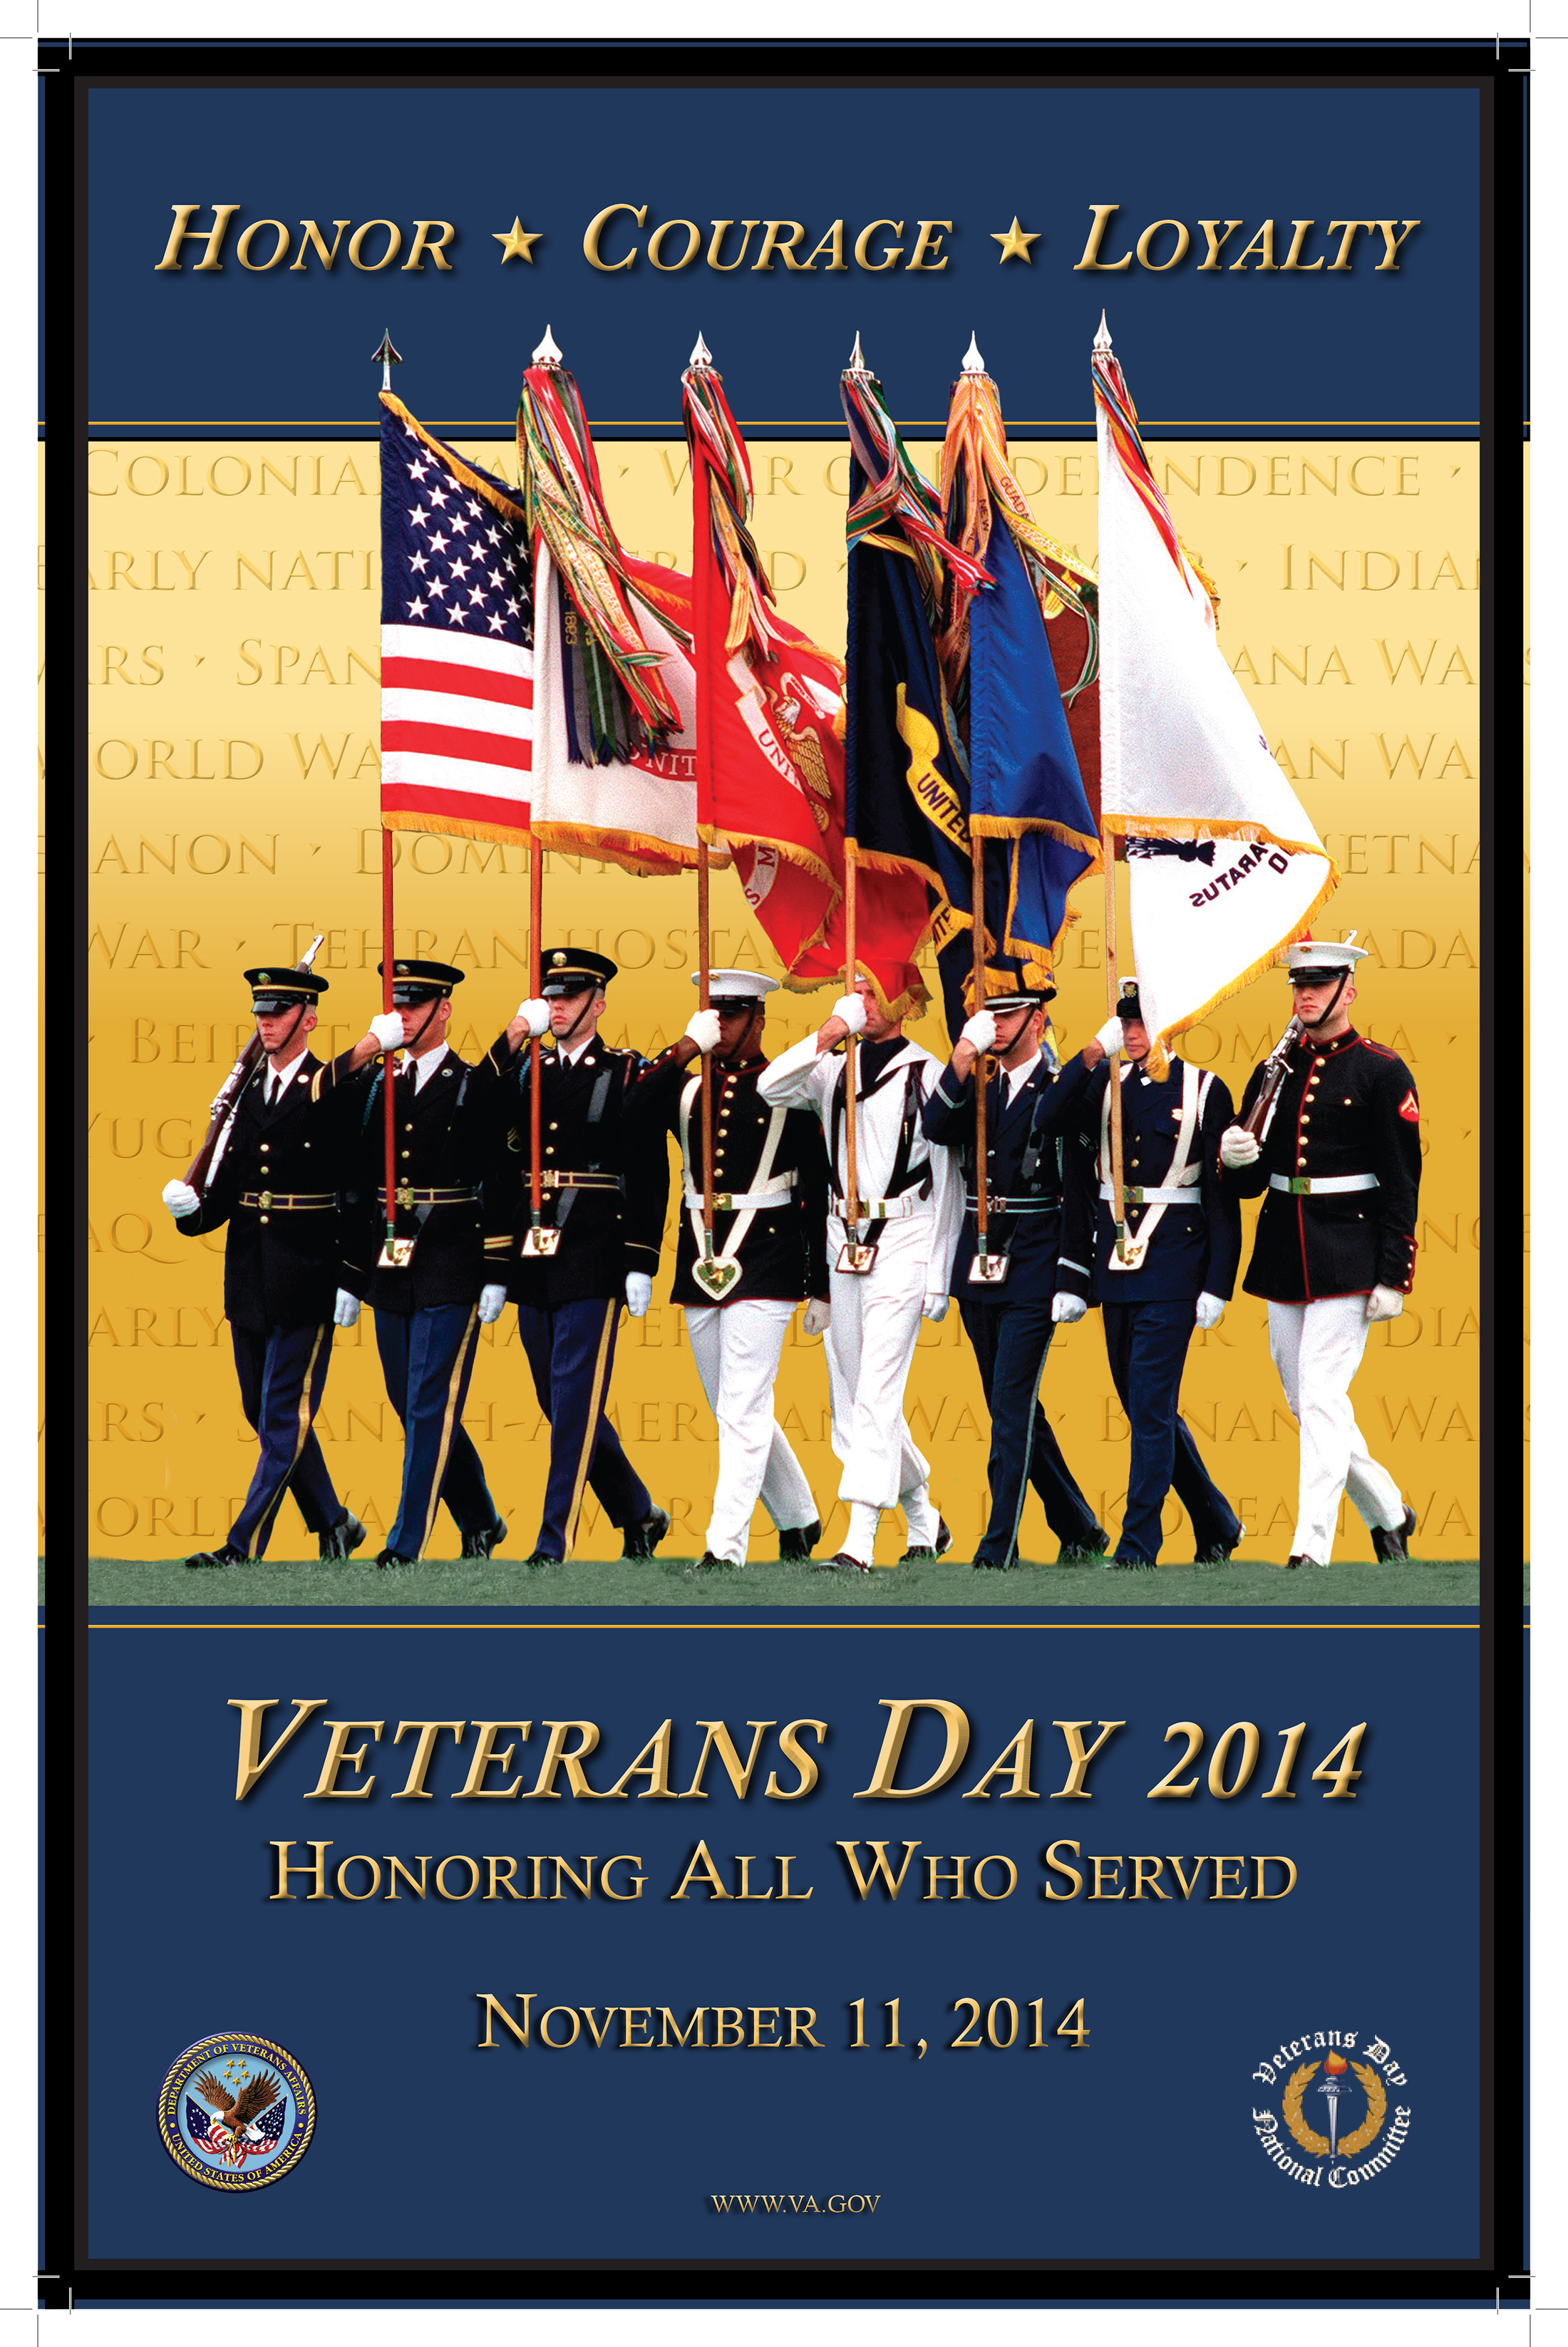 Veterans Day Program Clipart.